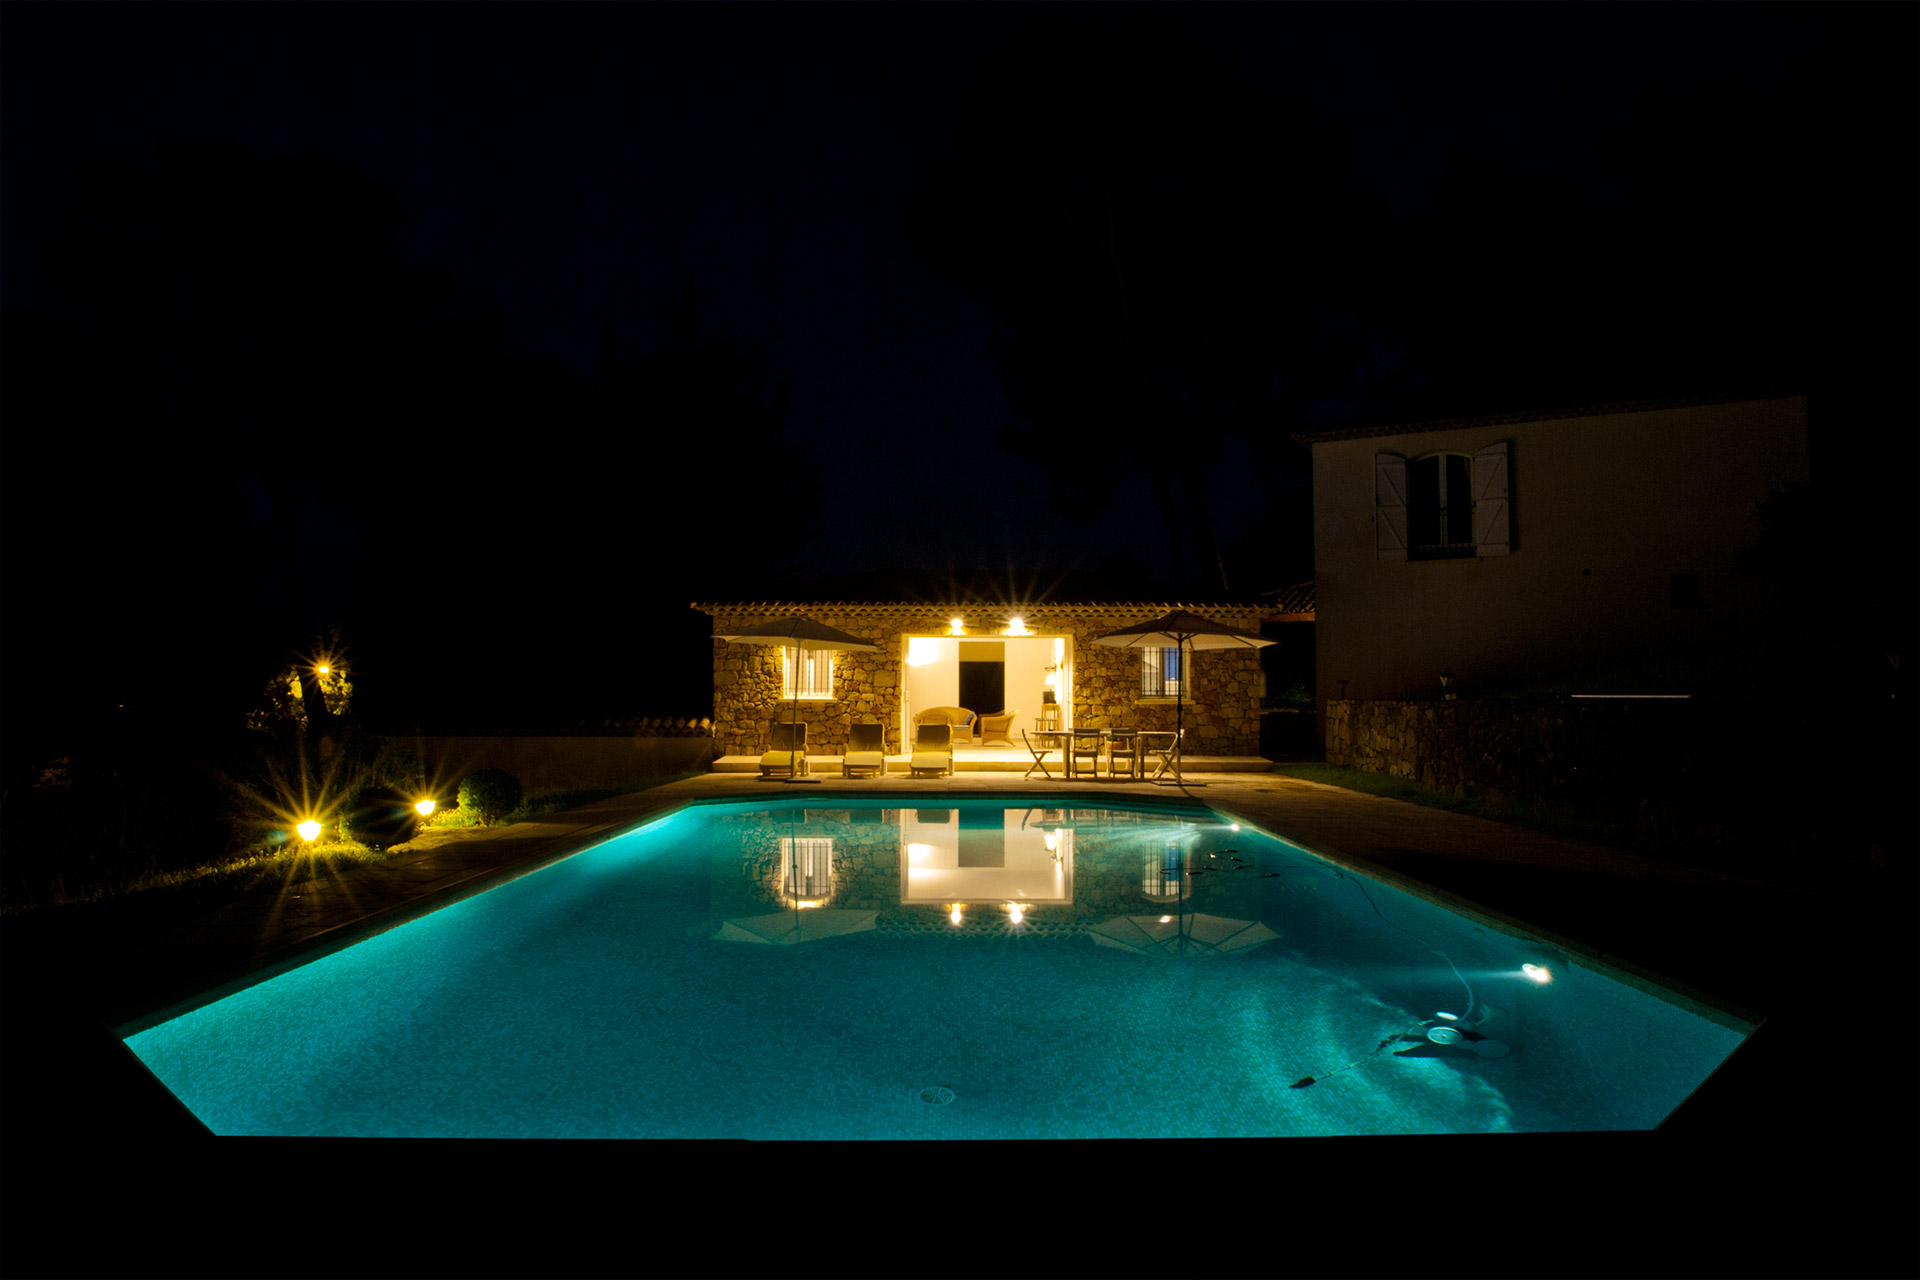 spacious 6 bedroom house with pool in provence near cannes